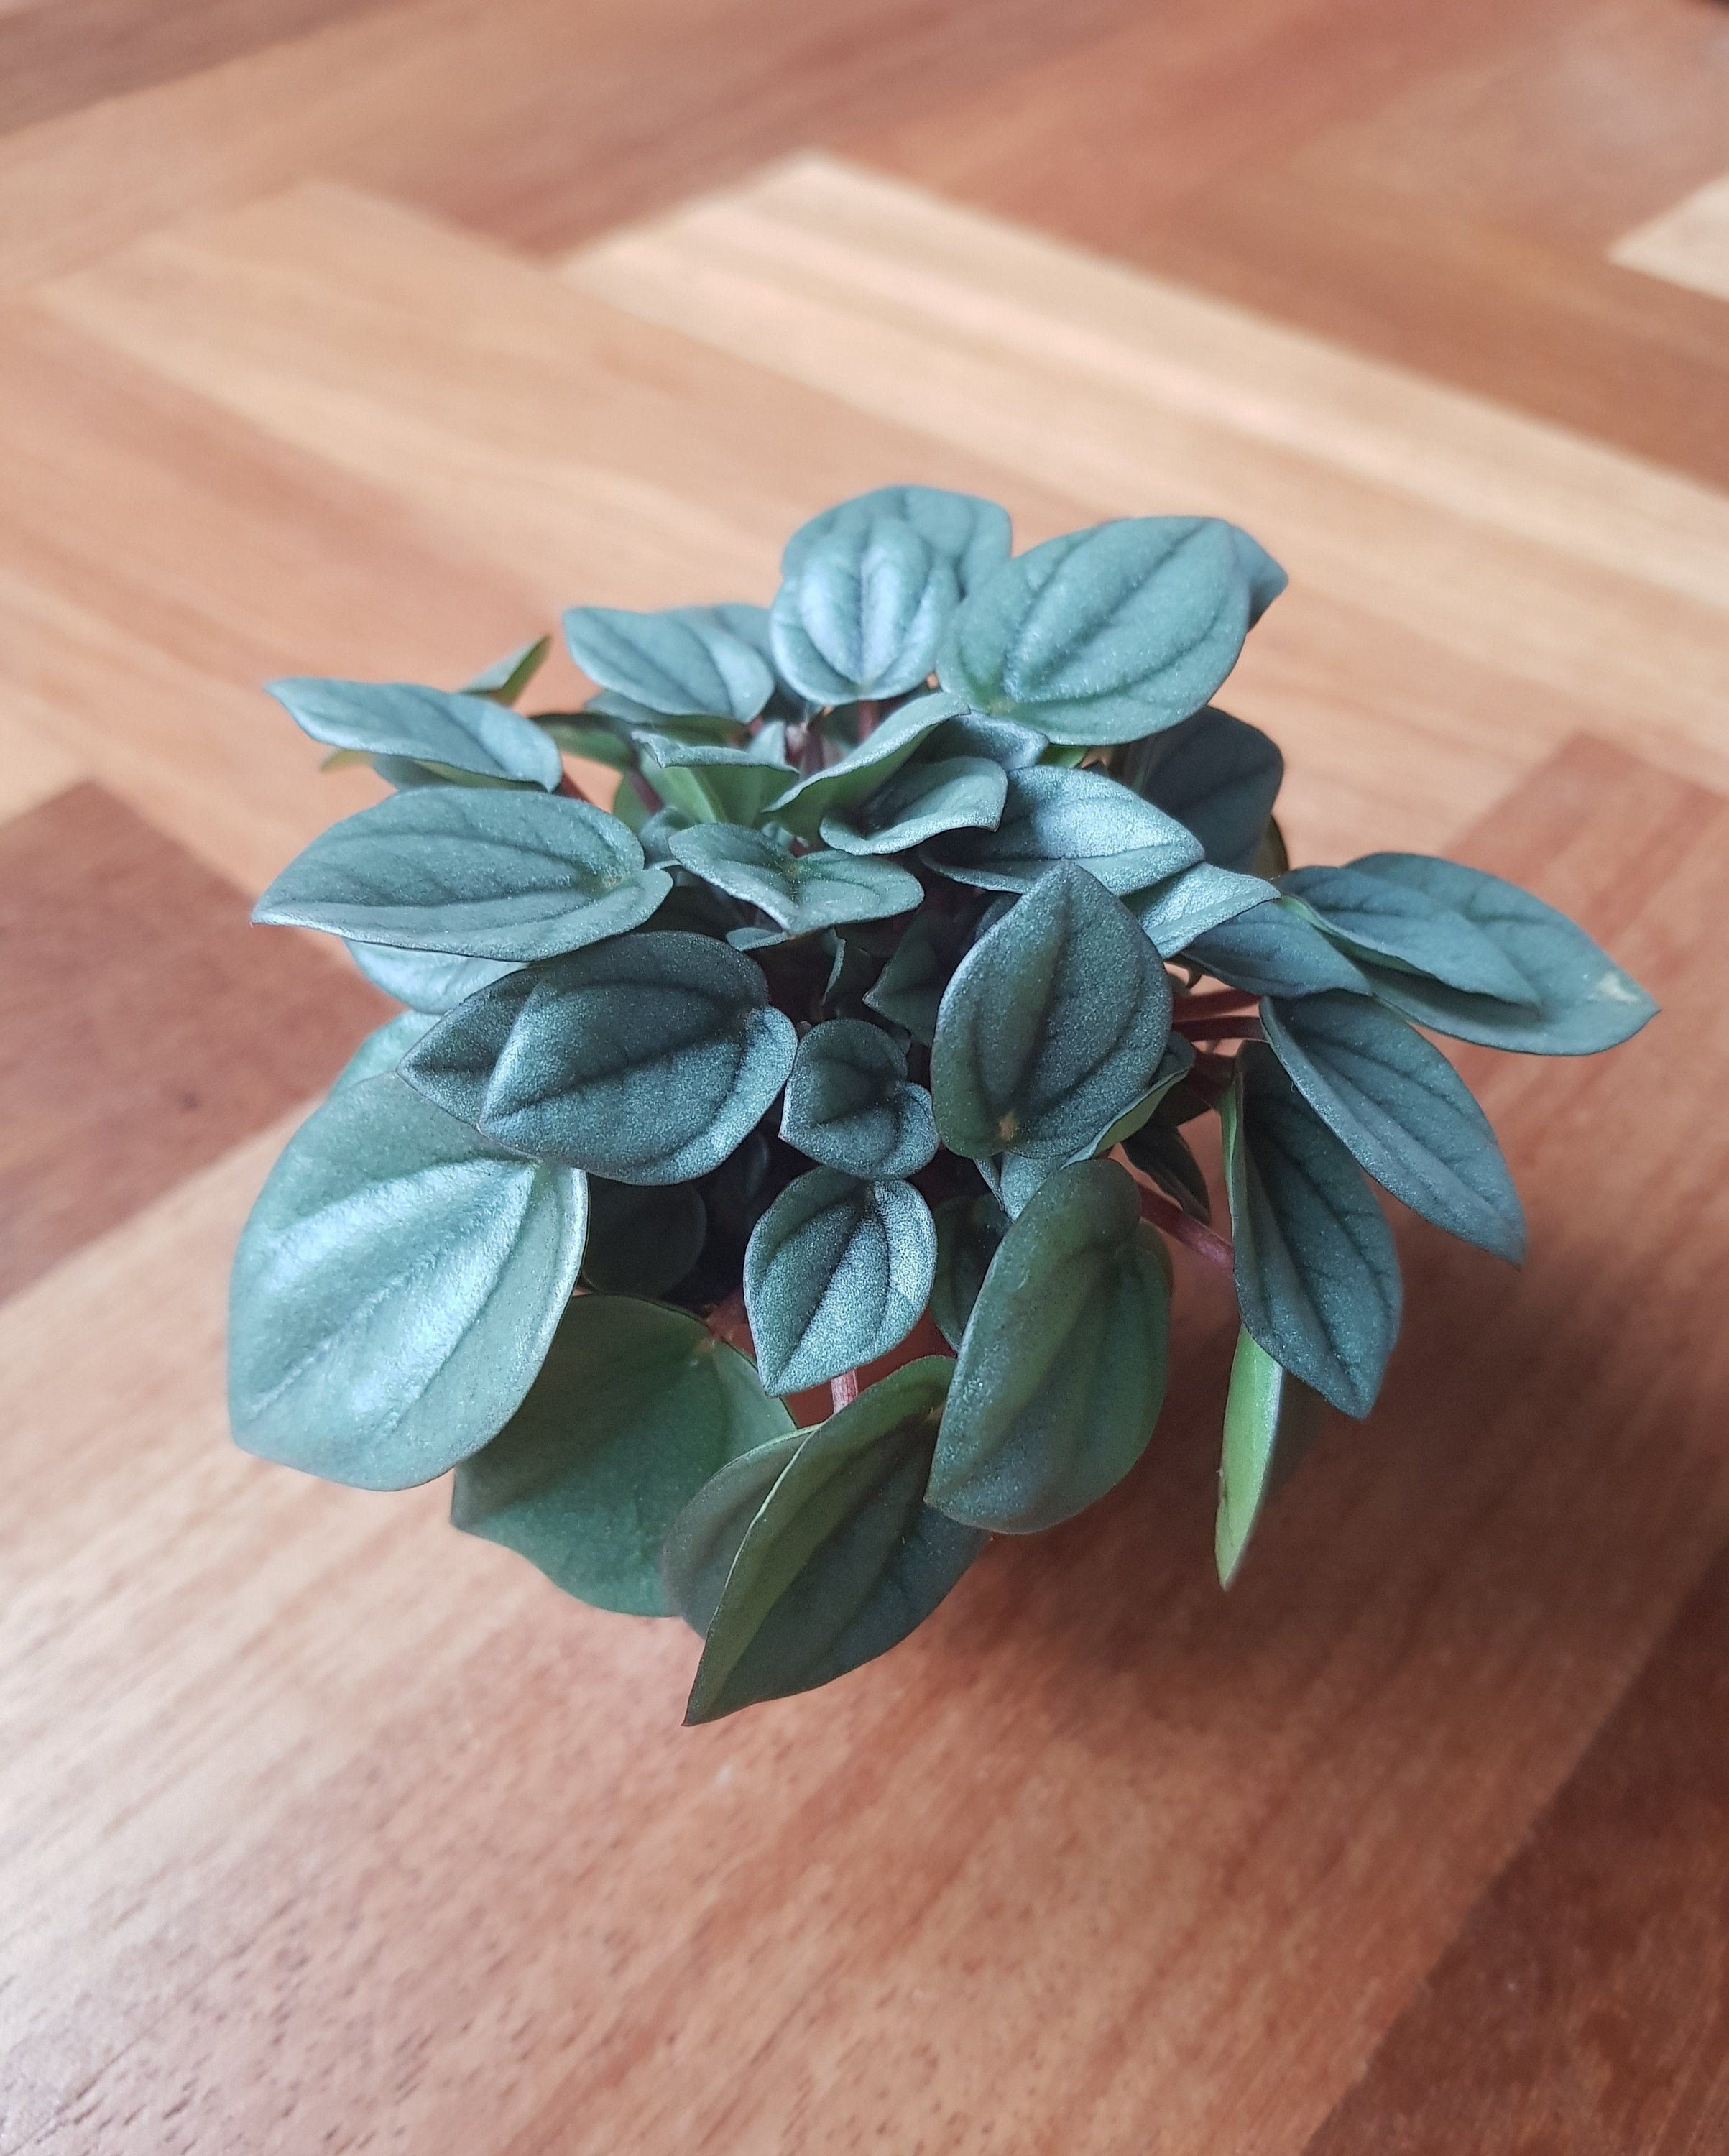 Peperomia Napoli Nights Live Plant Www Etsy Com Live Low Waste Living Quotes Napoli Nights Peperomia Plant In 2020 Live Plants Plants Peperomia